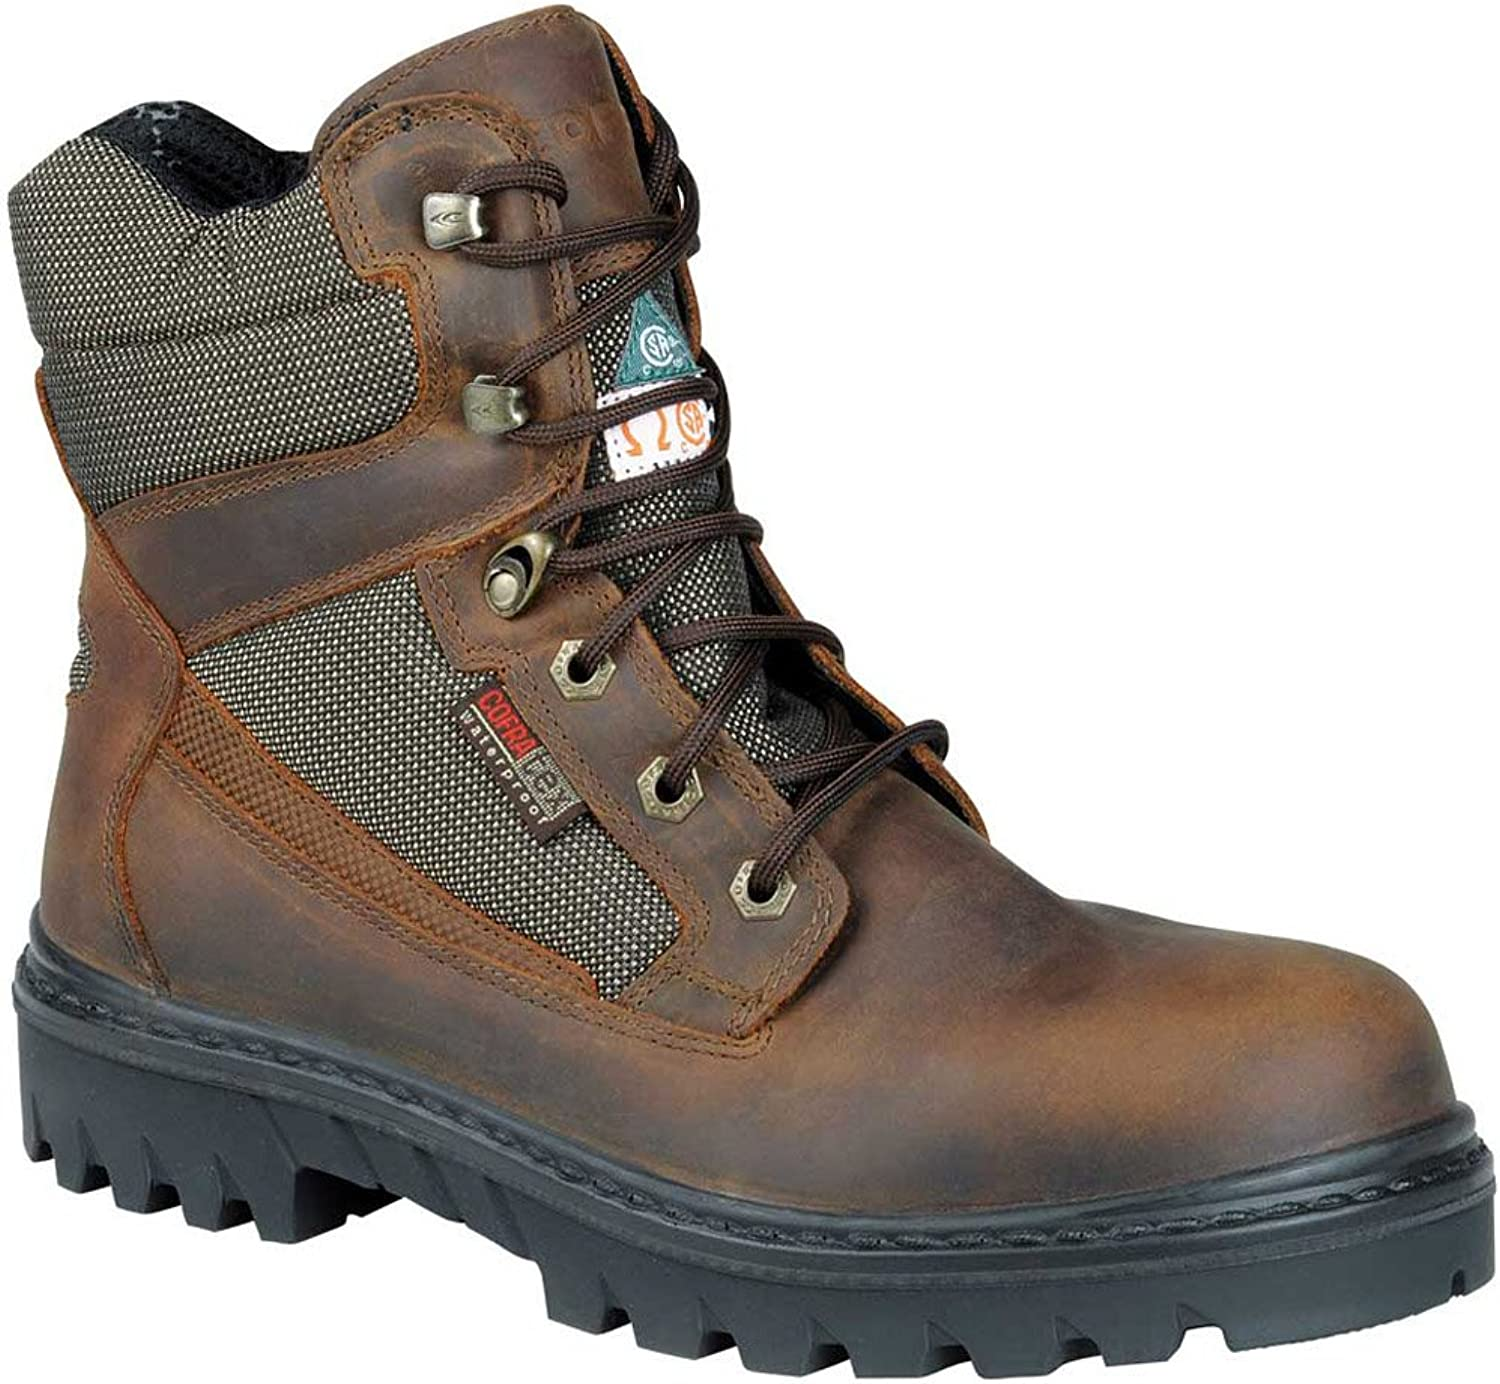 Cofra 27670-CU0.W08, 5 Raccoon EH PR Safety Boots, 8.5, Tan Brown